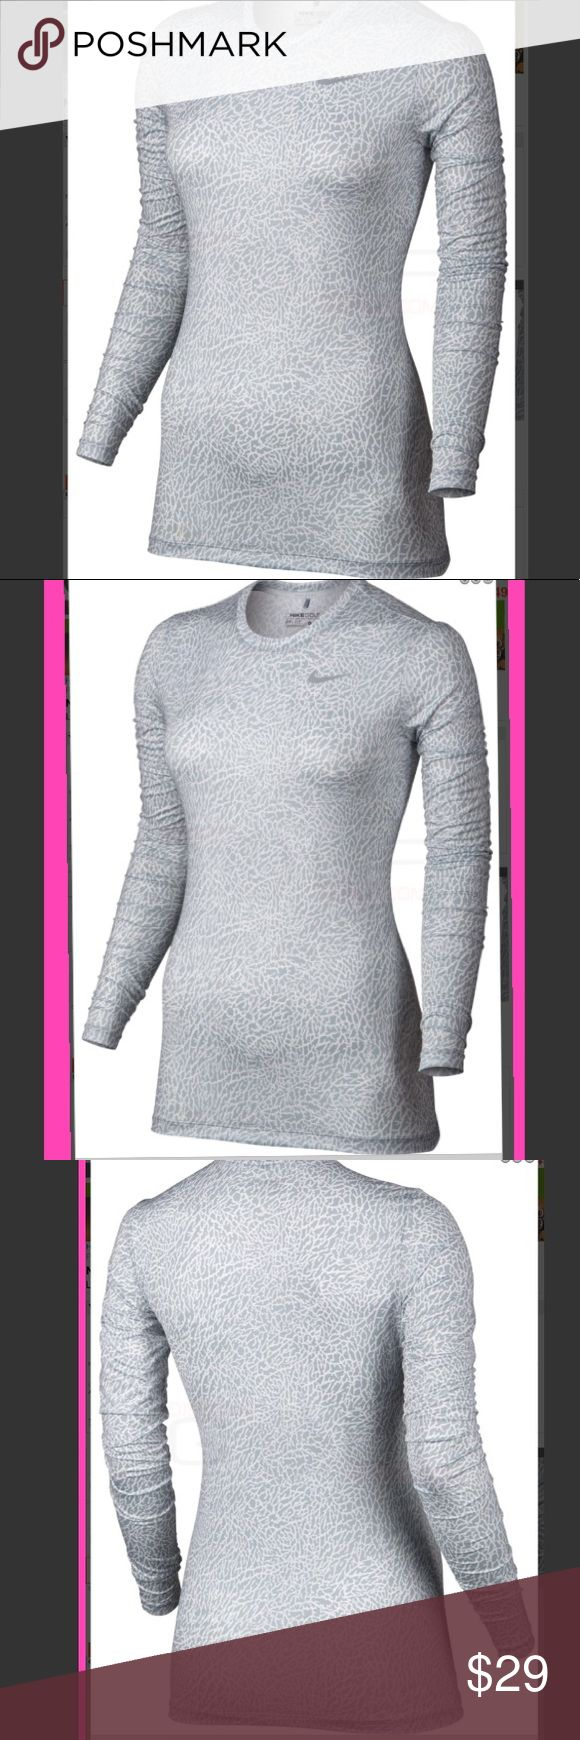 Nike golf shirt Nike Printed Crew Golf Baselayer is made with lightweight fabric powered by sweat-wicking Dri-Fit technology to help you stay dry and comfortable. Crew-neck design provides a nonrestrictive fit. Lightweight jersey fabric stretches with your body as you move. Provides UVA and UVB protection from the sun in the areas covered by the garment. 88% polyester/12% spandex. Brand new with tags! Nike Tops